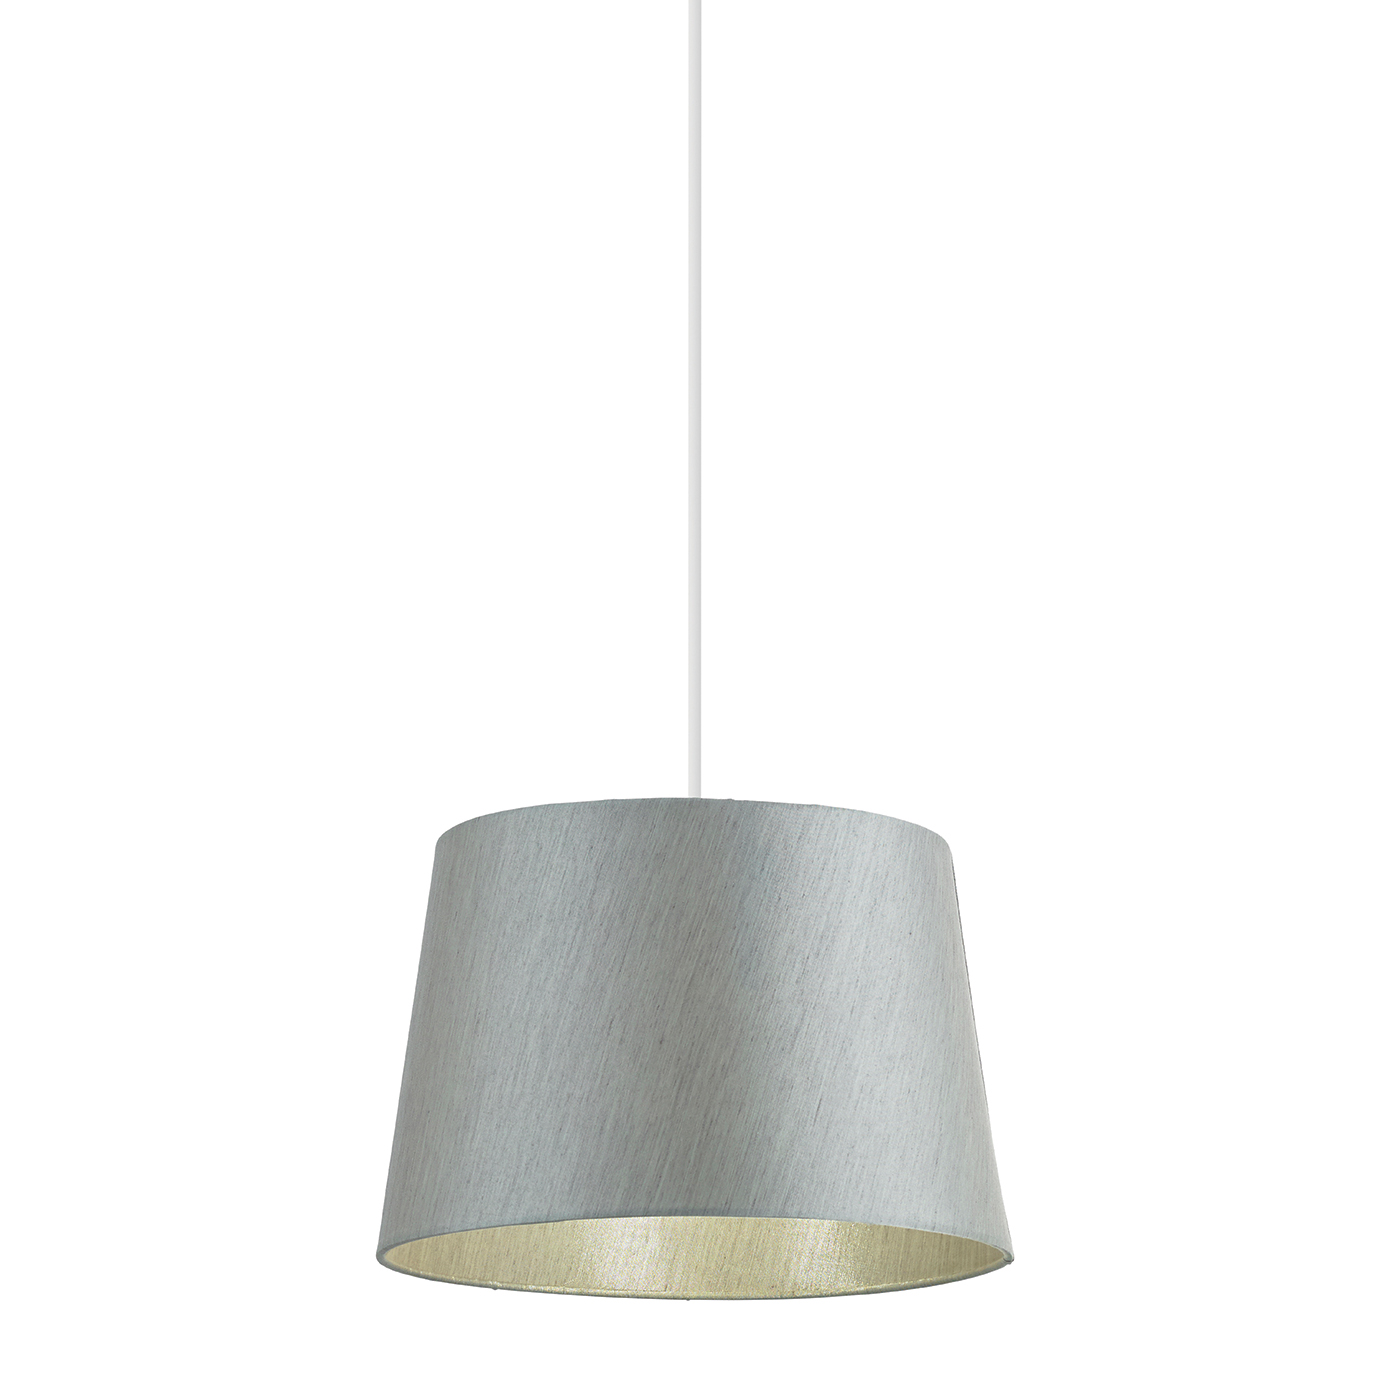 Endon Cordelia lampshade 12 inch Silver grey faux silk 200mm H x 305mm D max. Thumbnail 1